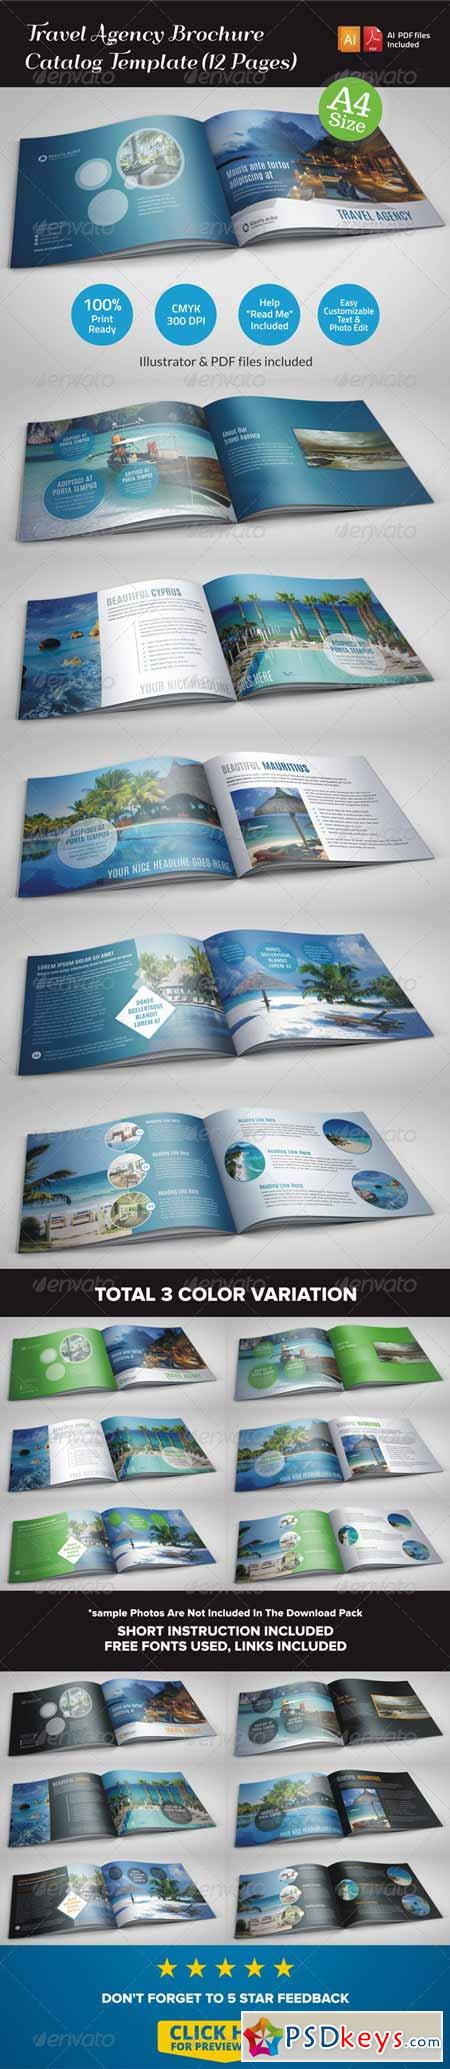 Travel Agency Brochure Catalog Template (12 Pages) 6925114